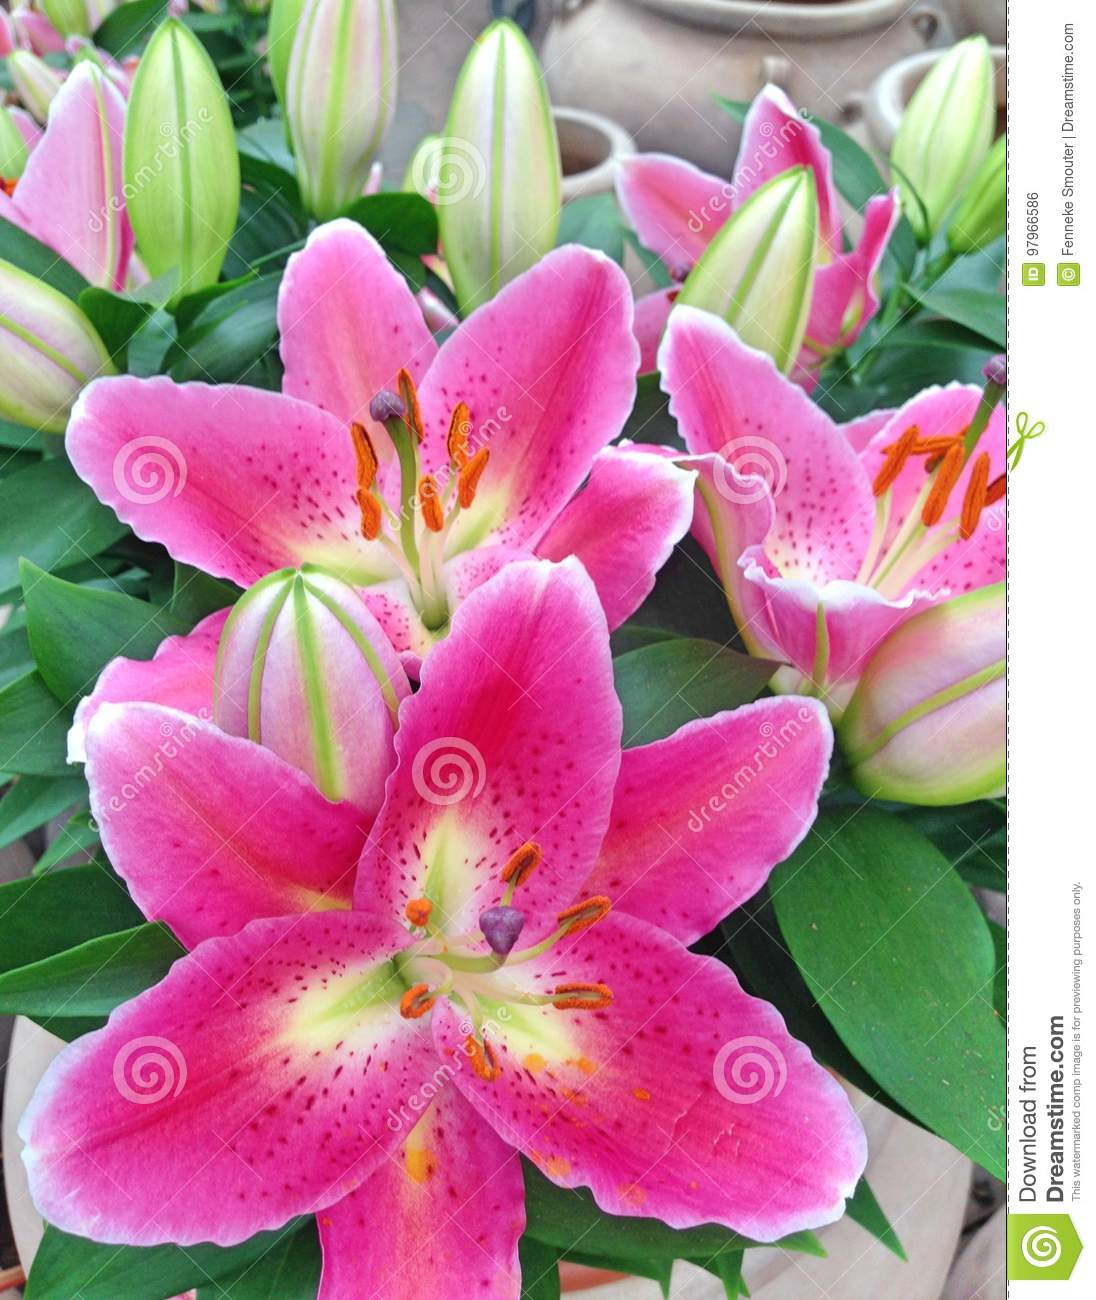 Bouquet Of Bright Pink Colored Lily Flowers And Flower Bulbs Stock